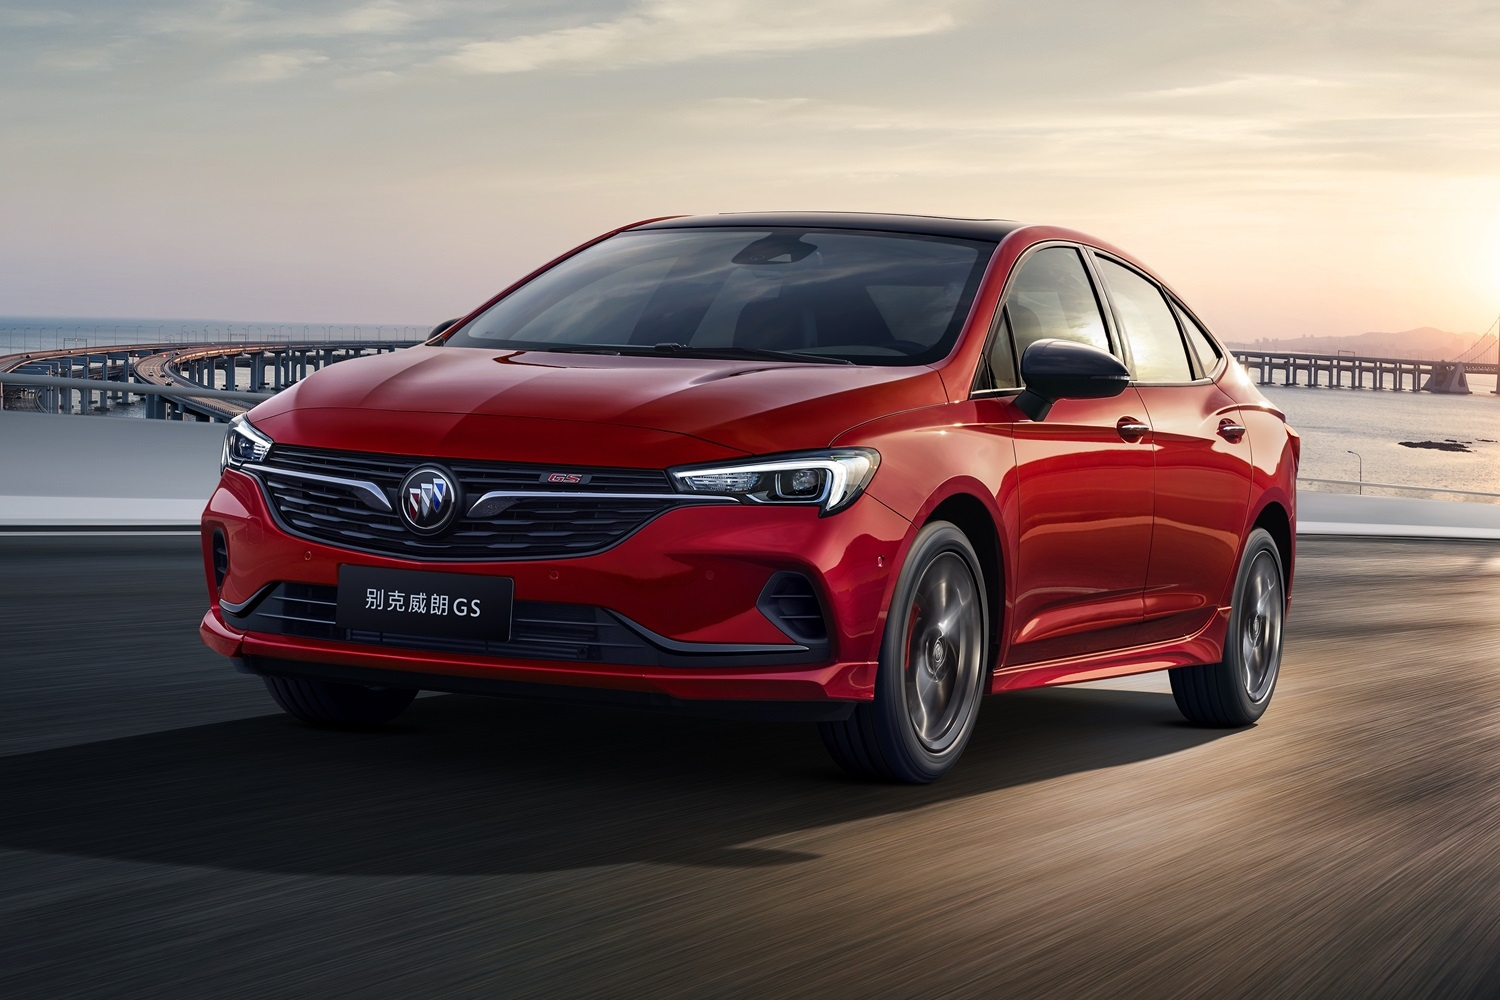 New 2021 Buick Verano Gs Launches In China | Gm Authority New 2022 Buick Verano Length, Images, Manual Transmission